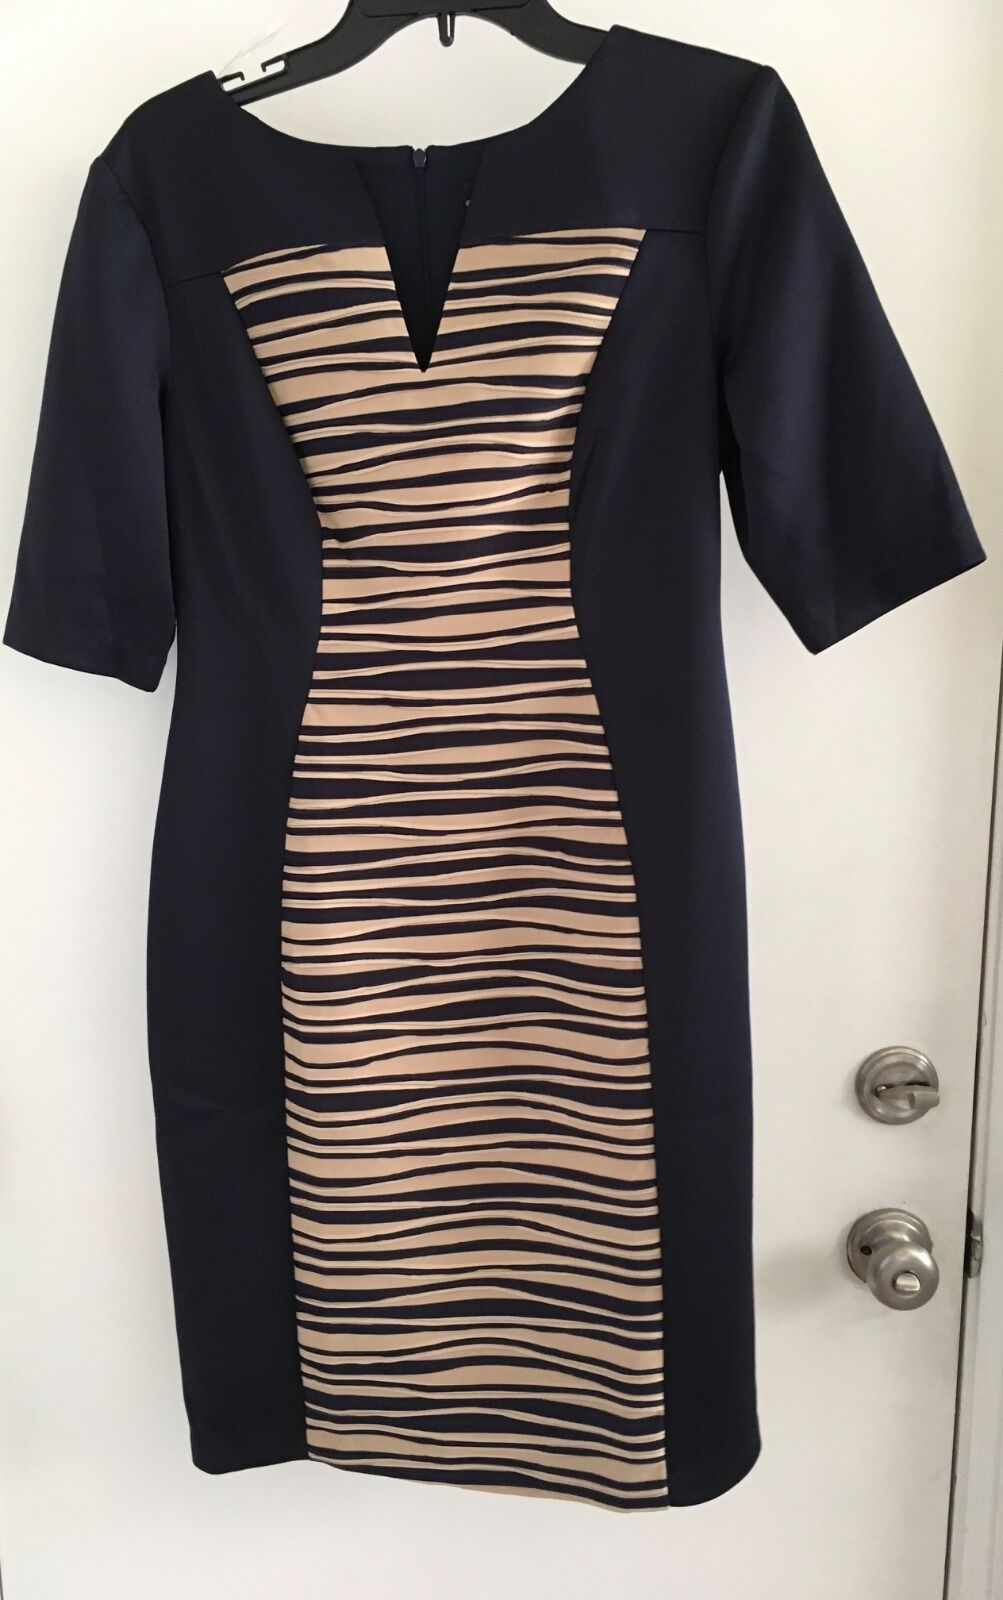 Connected Laser cut Panel Sheath midnight blue with beig insert Dress Size 8 NWT